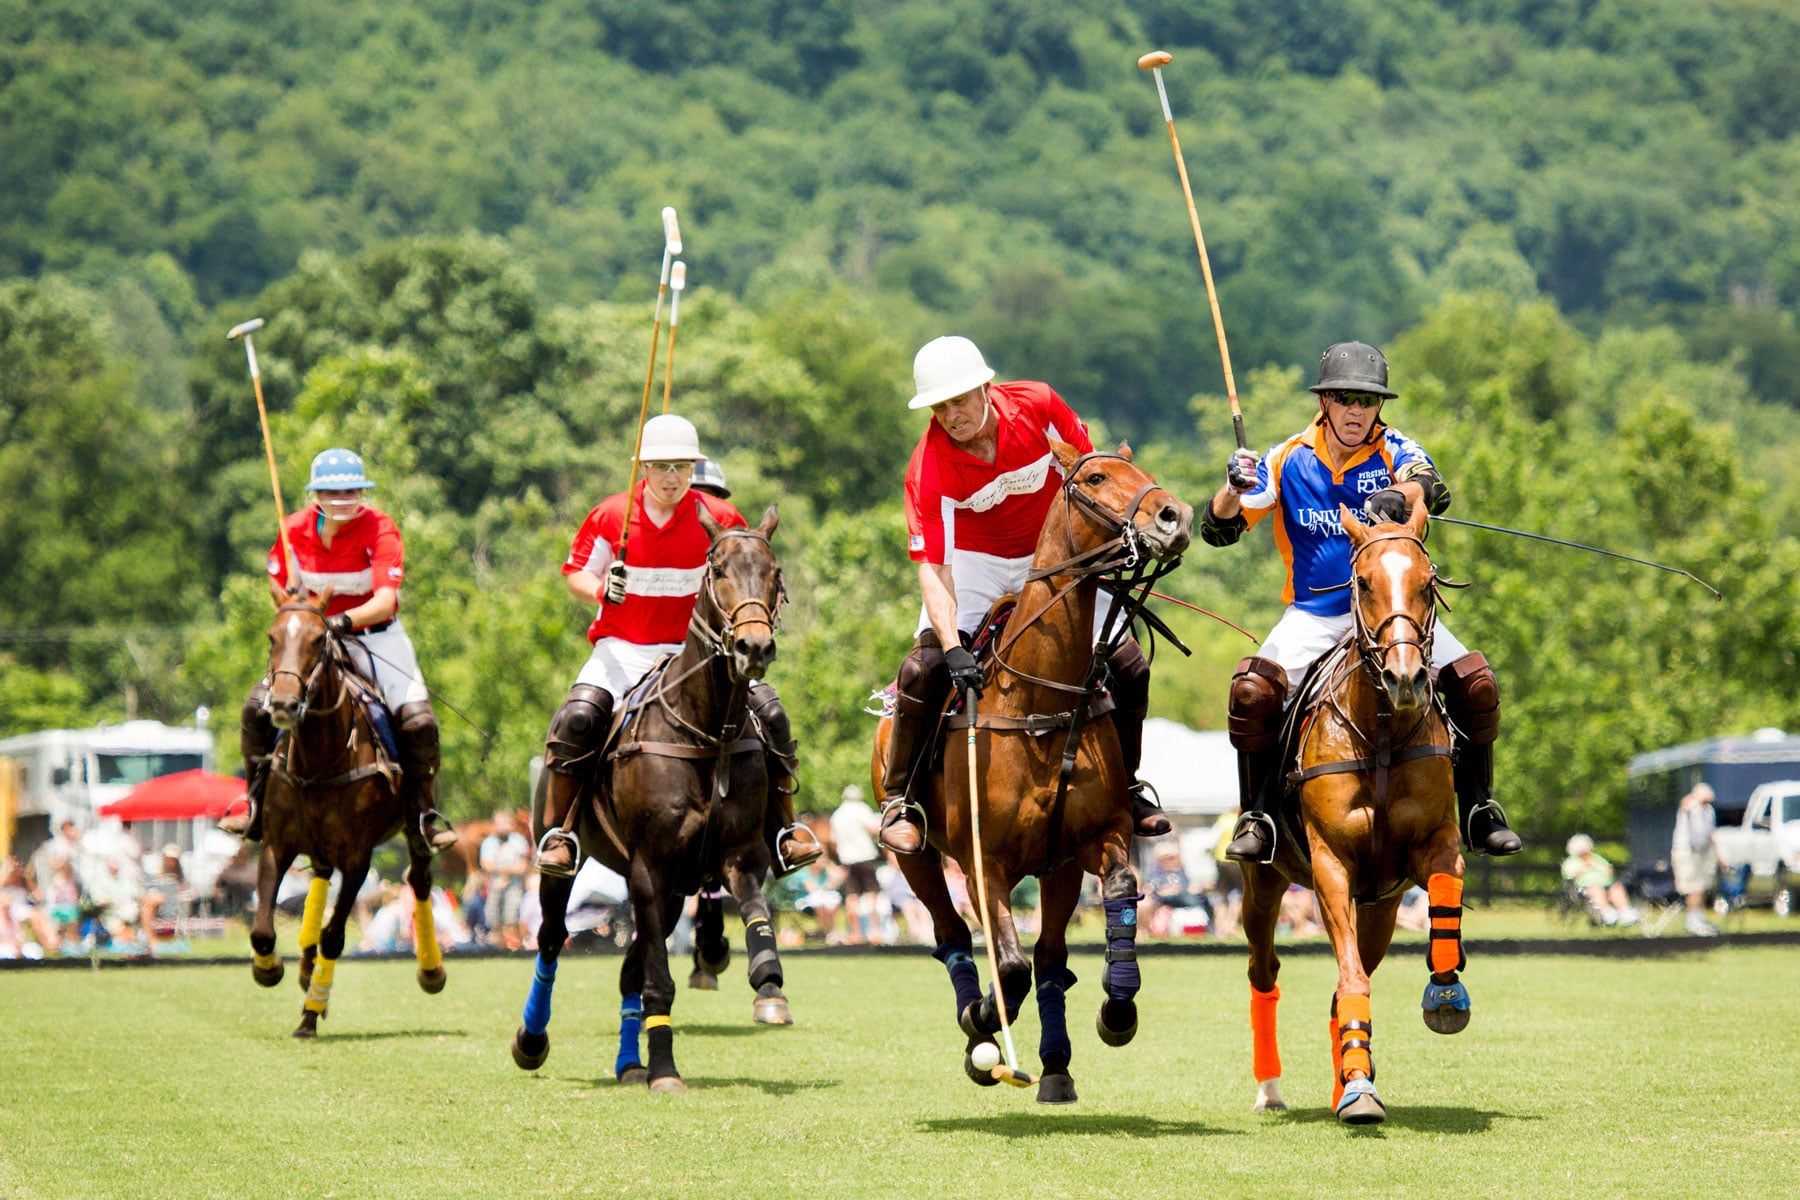 Polo match at King Family Vineyards